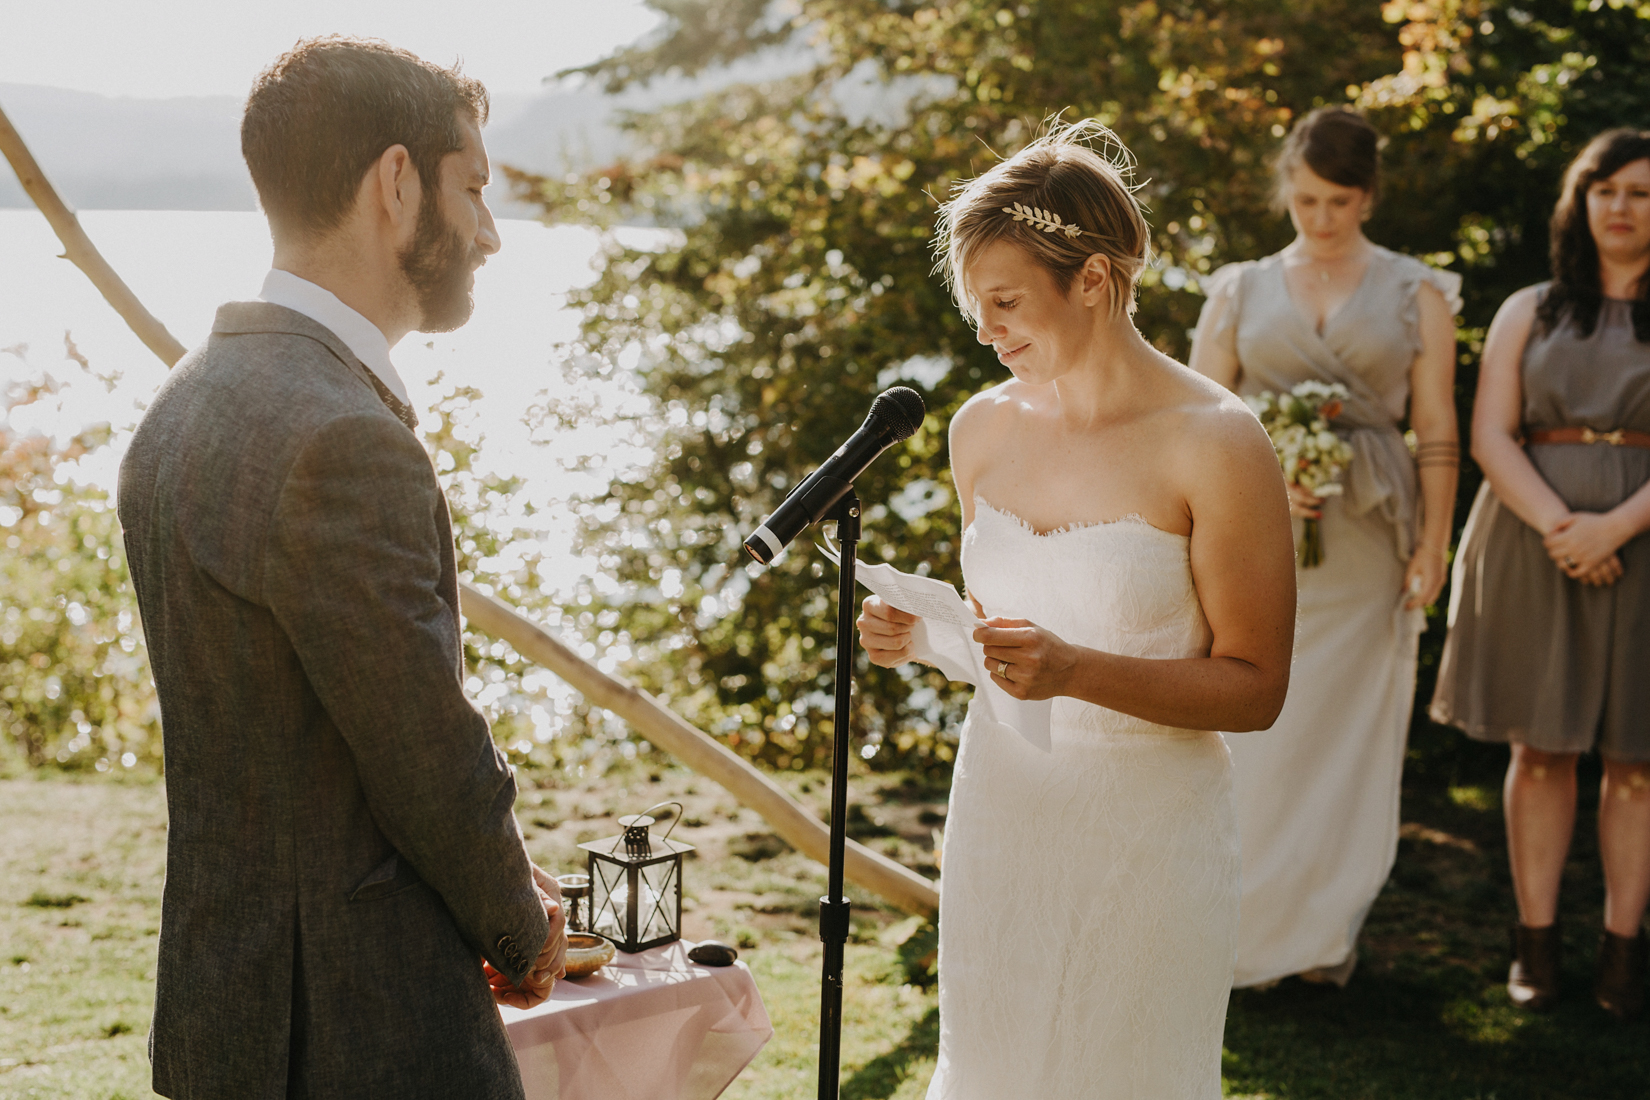 Wes Anderson Themed Wedding ceremony at oregon campground